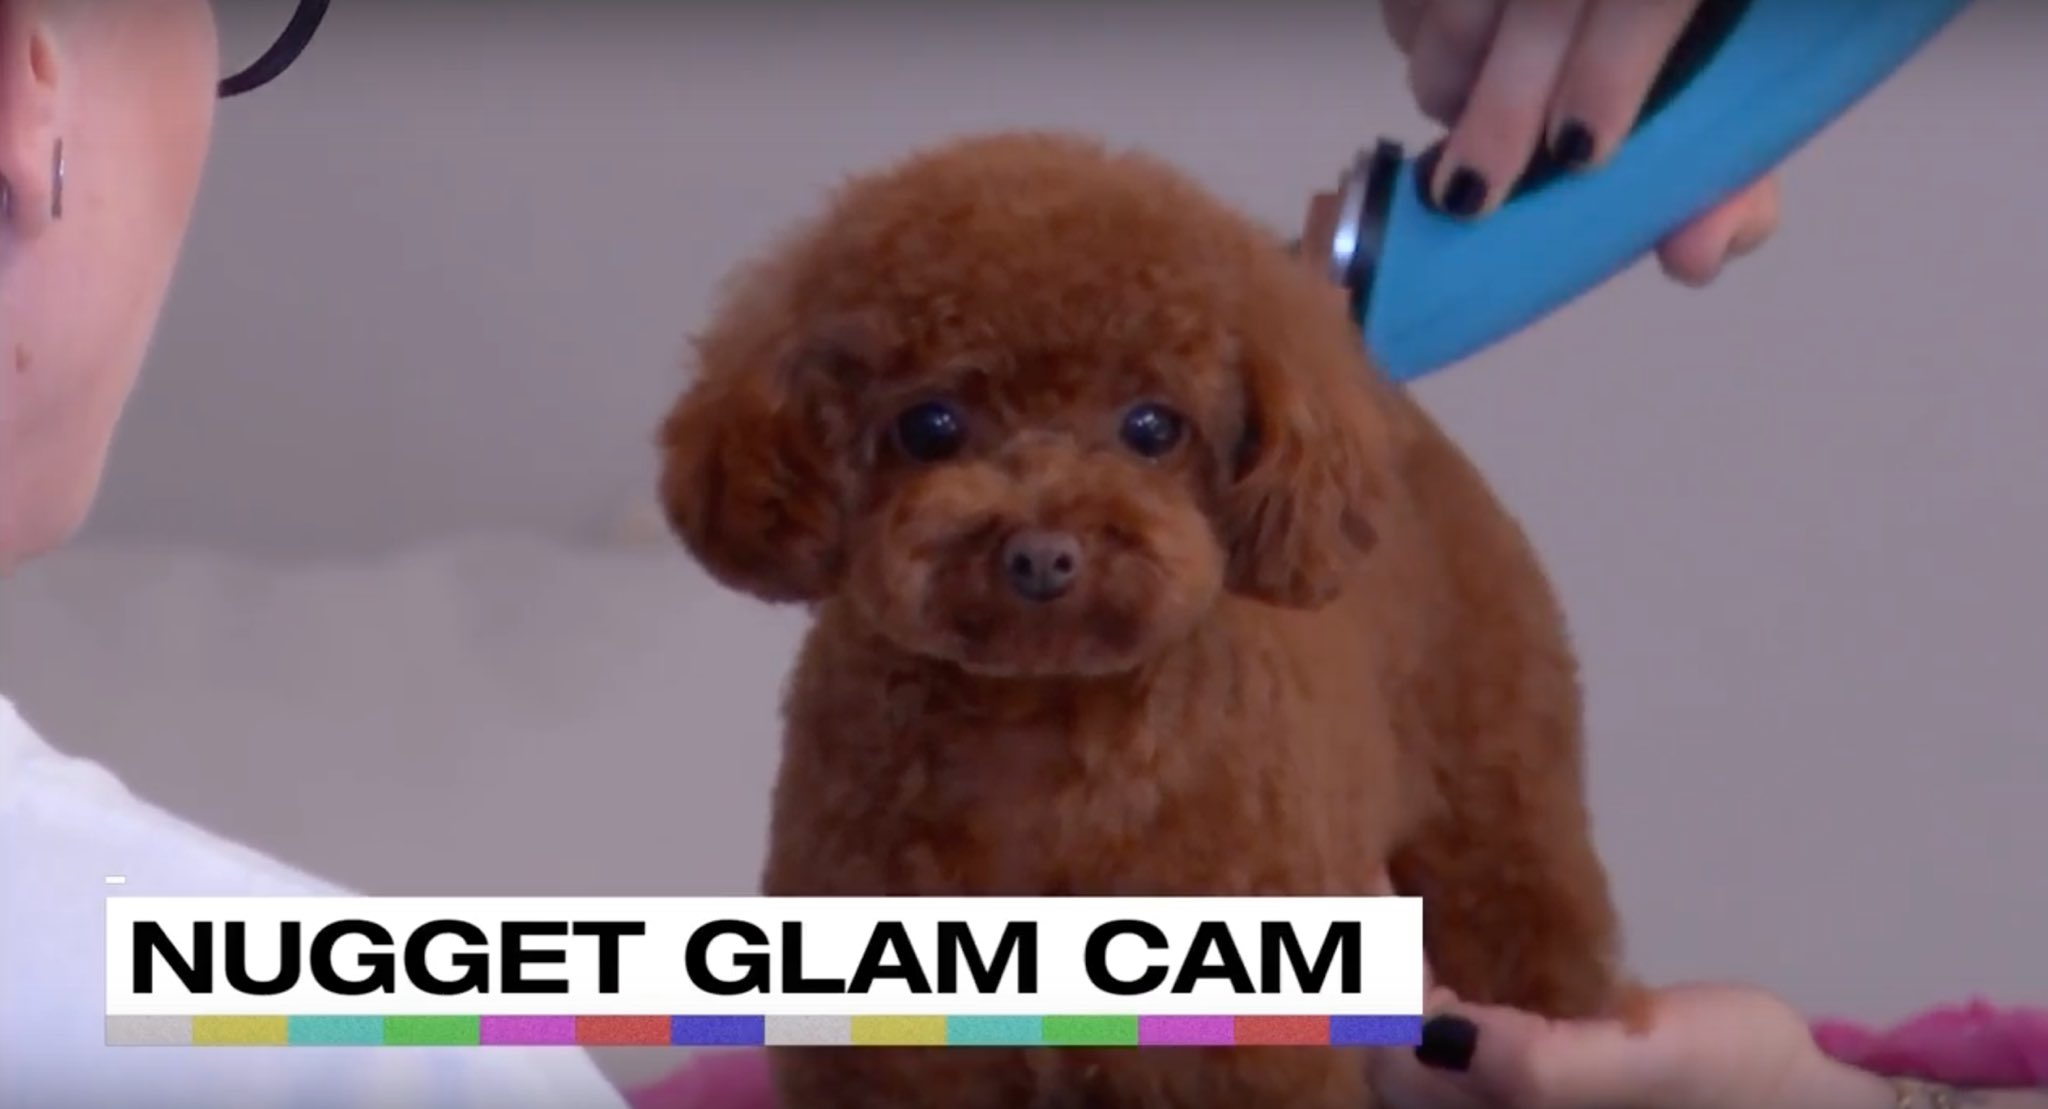 Nugget is also looking to be a @COVERGIRL #KPWWW #TeamKP https://t.co/ZkpJOVib45